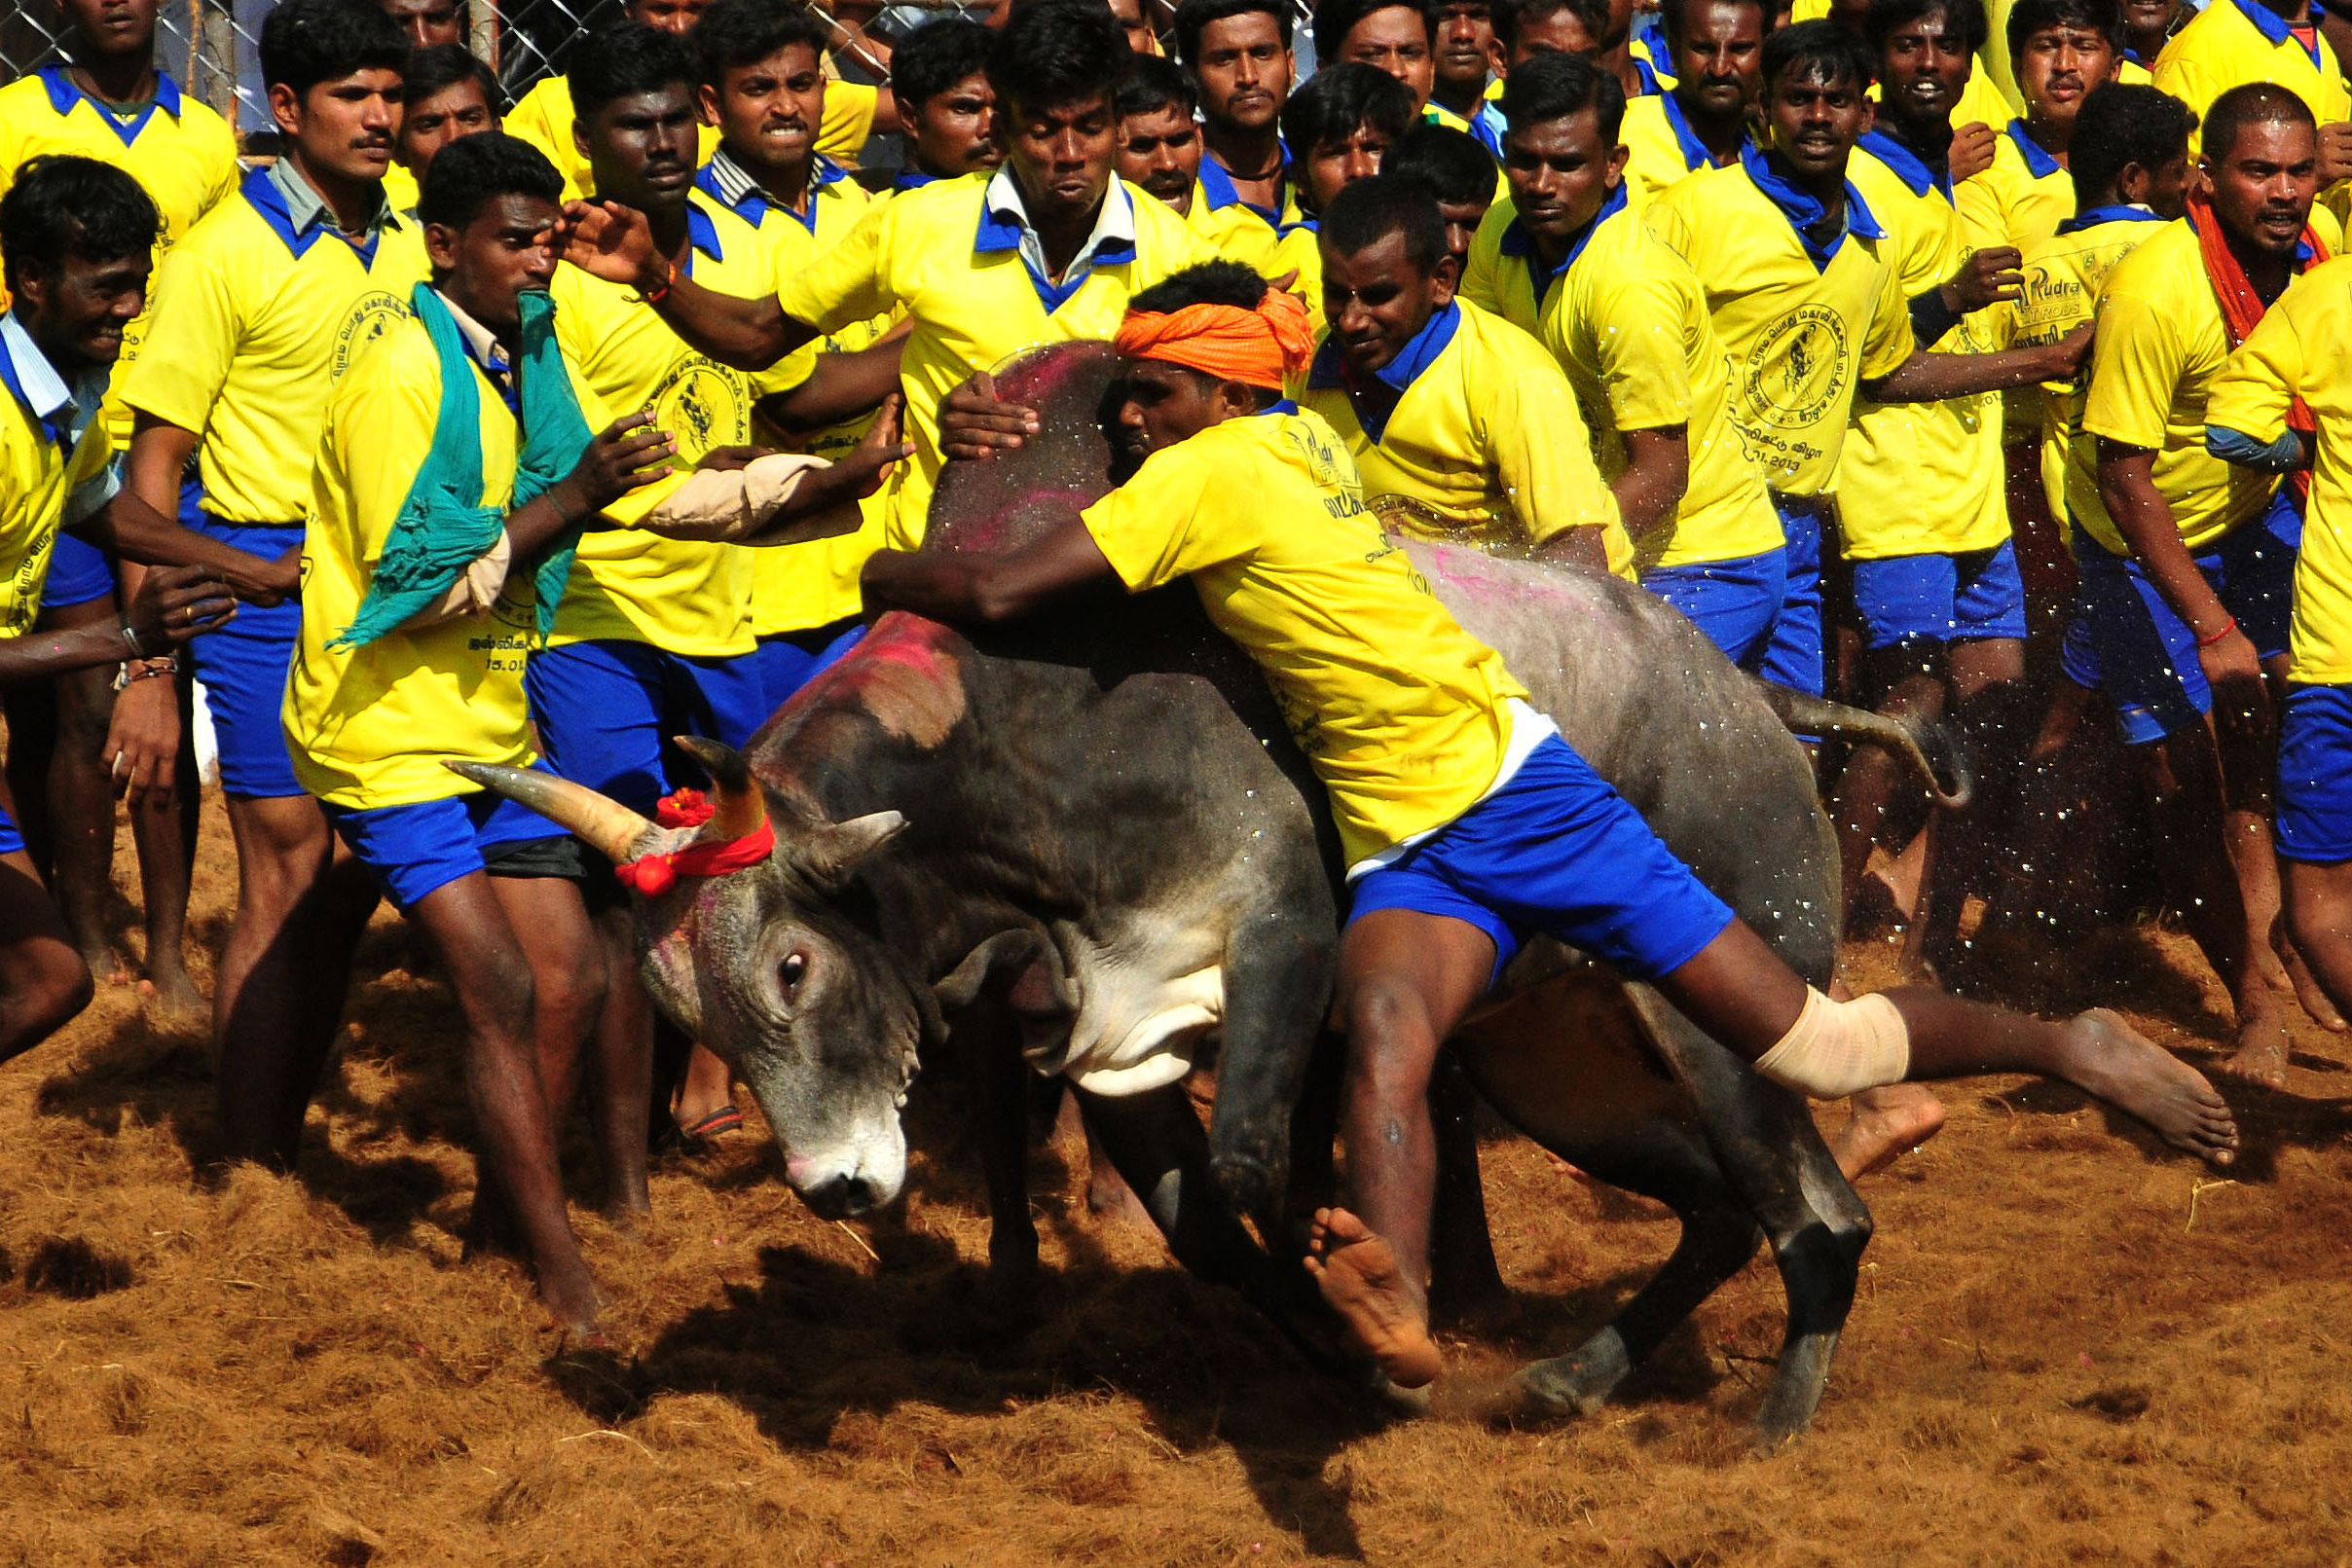 Participants attempt to hold down a bull during the traditional bull taming festival called 'Jallikattu' in Palamedu near Madurai, Jan. 15, 2013